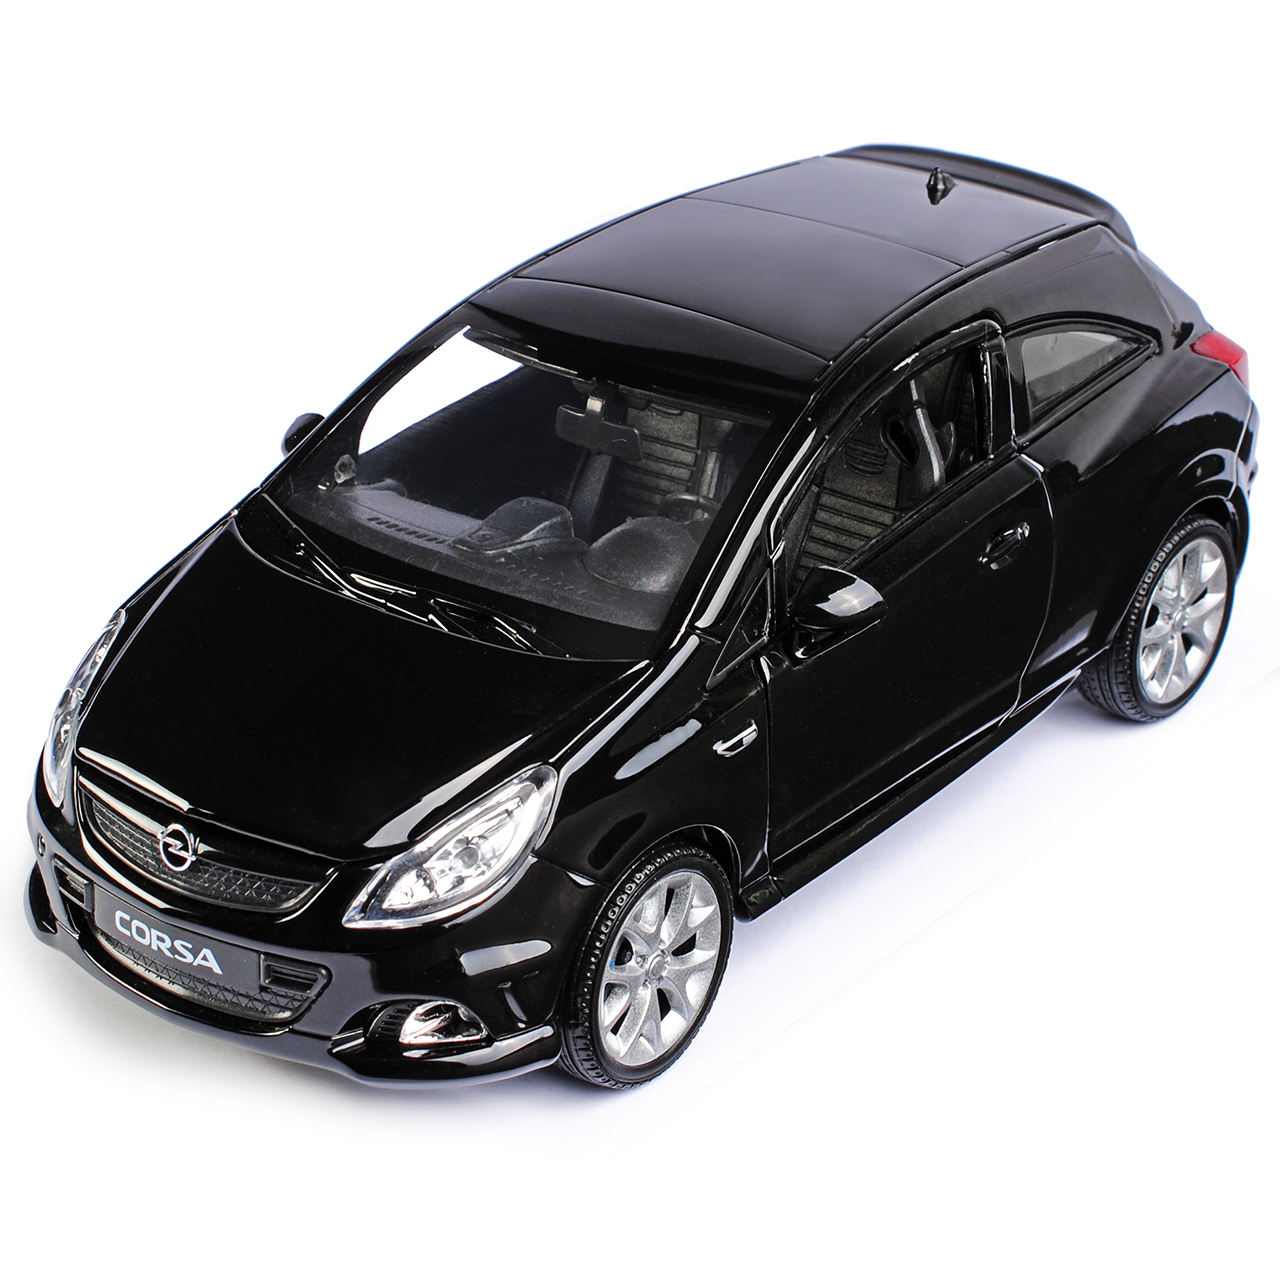 opel corsa d 3 t rer schwarz ab 2006 1 24 welly modell. Black Bedroom Furniture Sets. Home Design Ideas